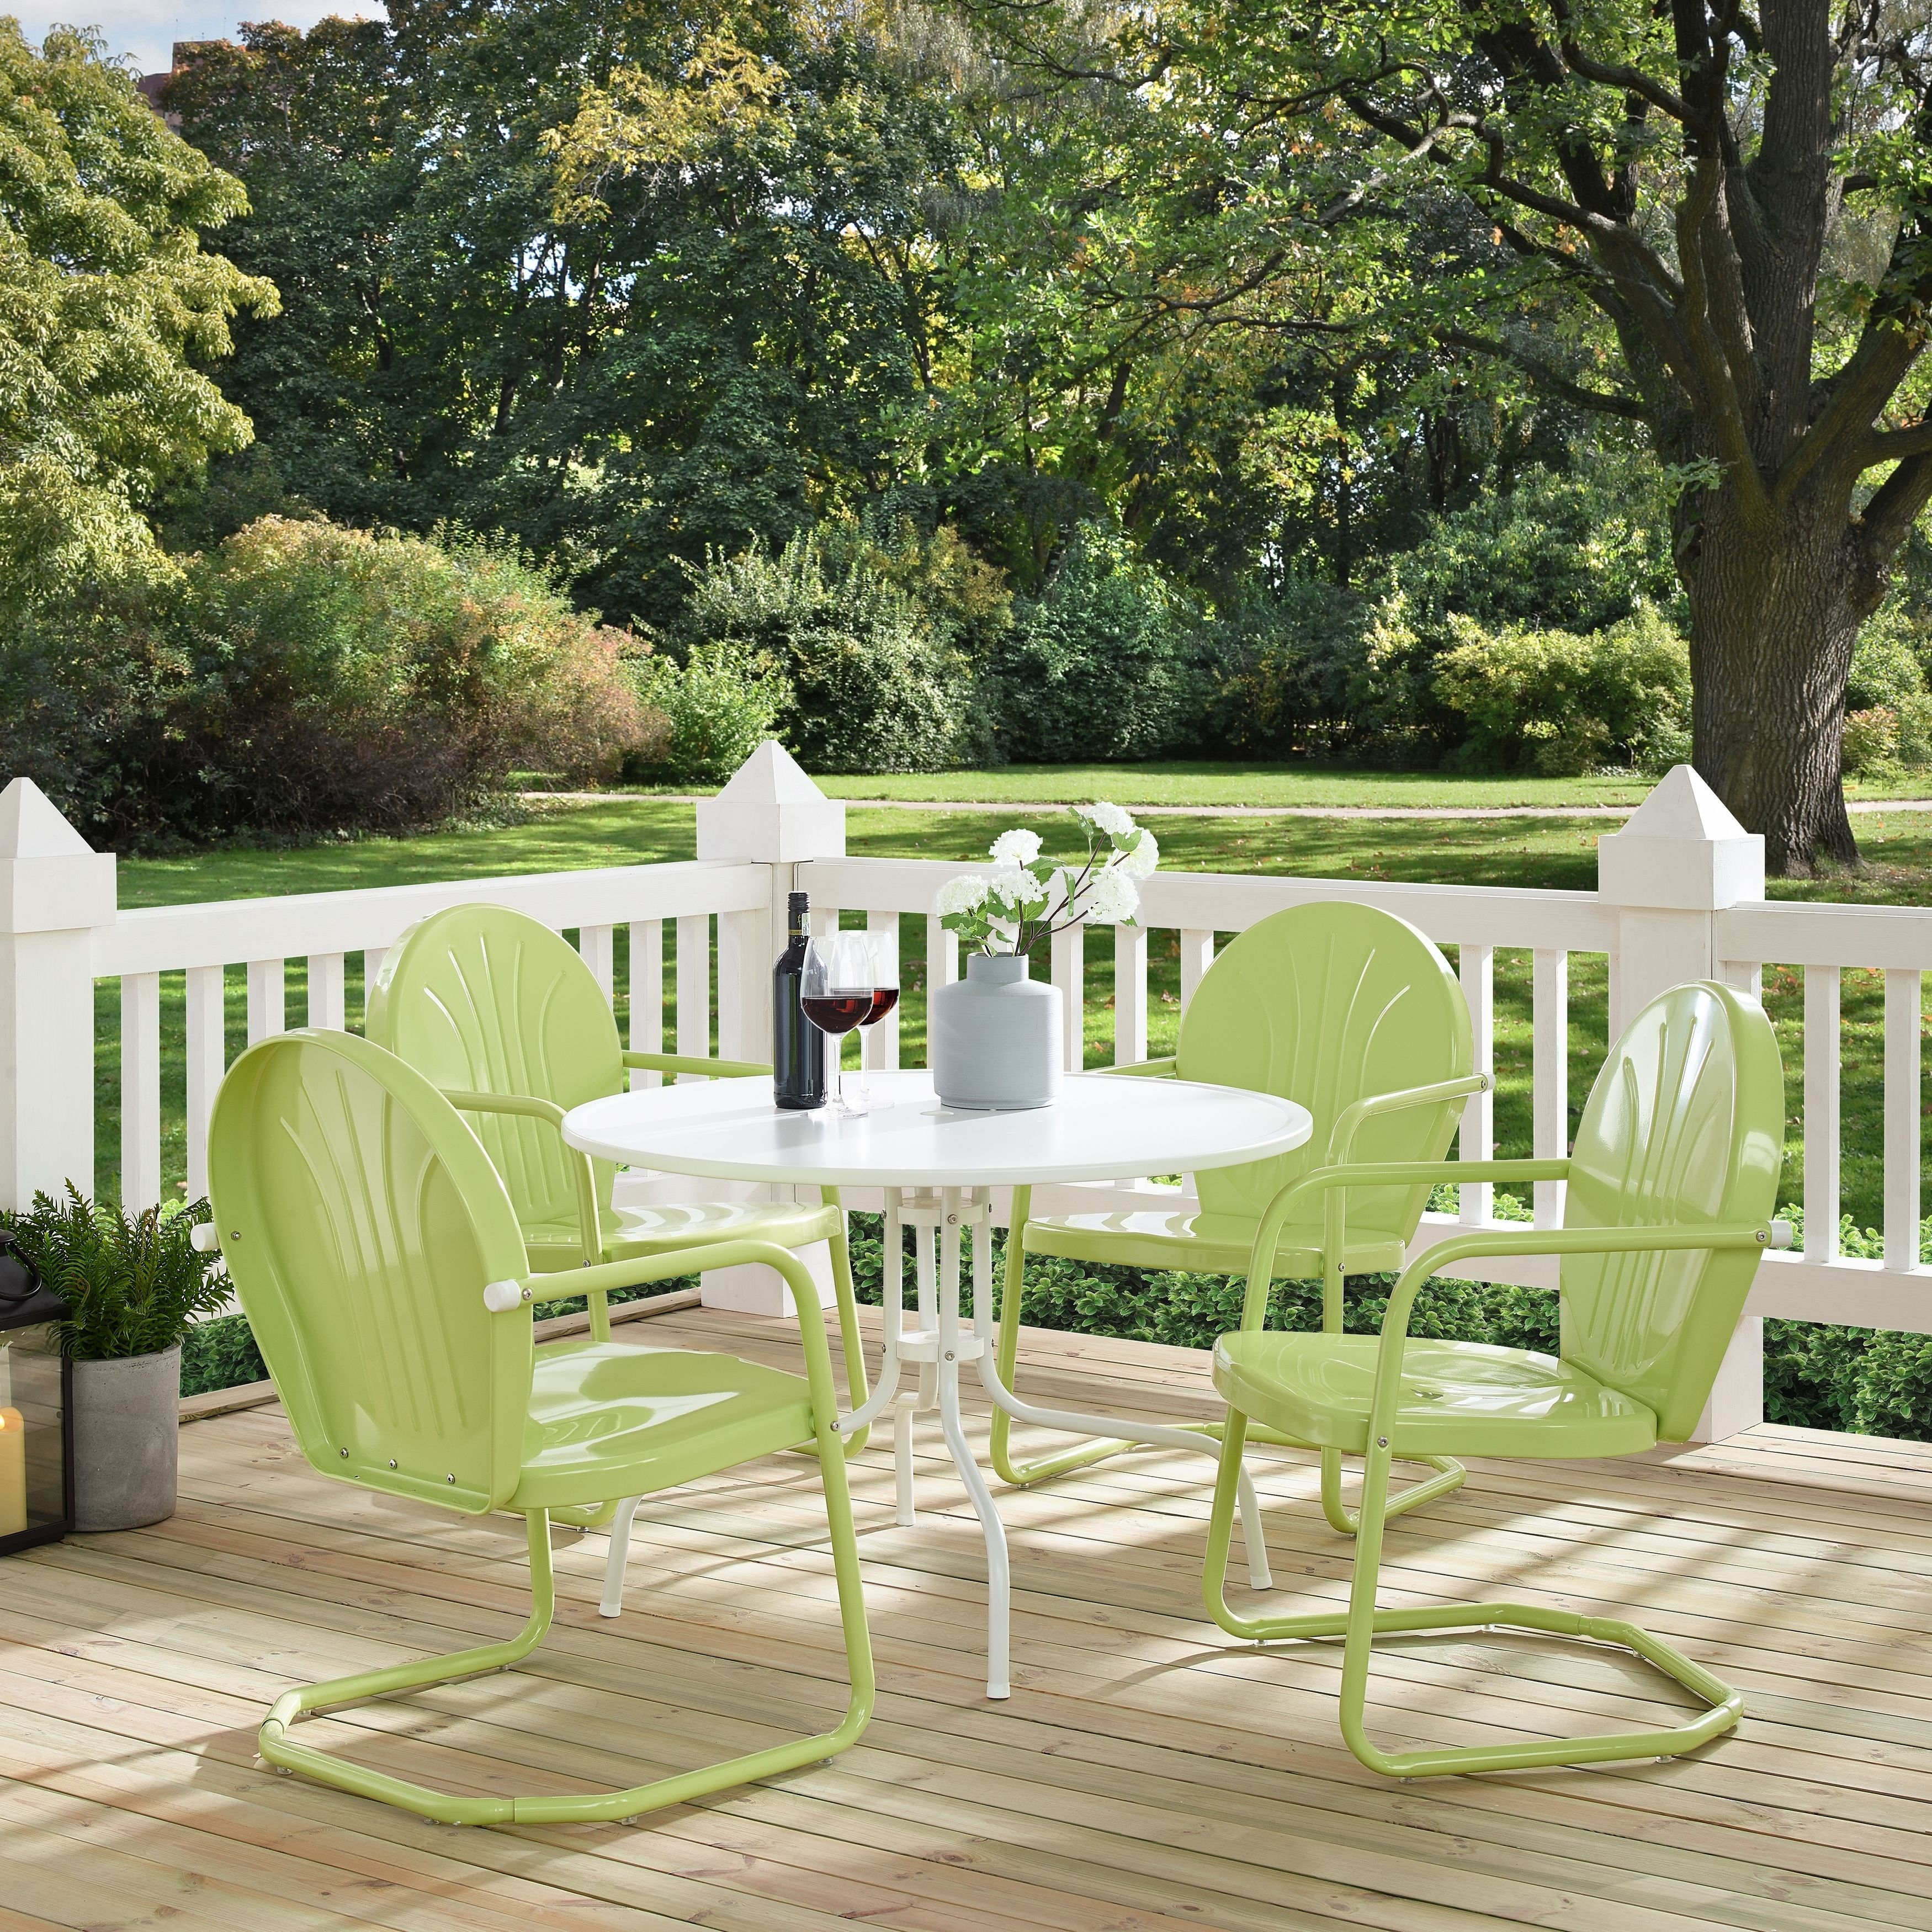 Buy Outdoor Dining Sets Online At Overstock Our Best Patio Furniture Deals Patio Furniture Deals Outdoor Dining Set Small Outdoor Spaces